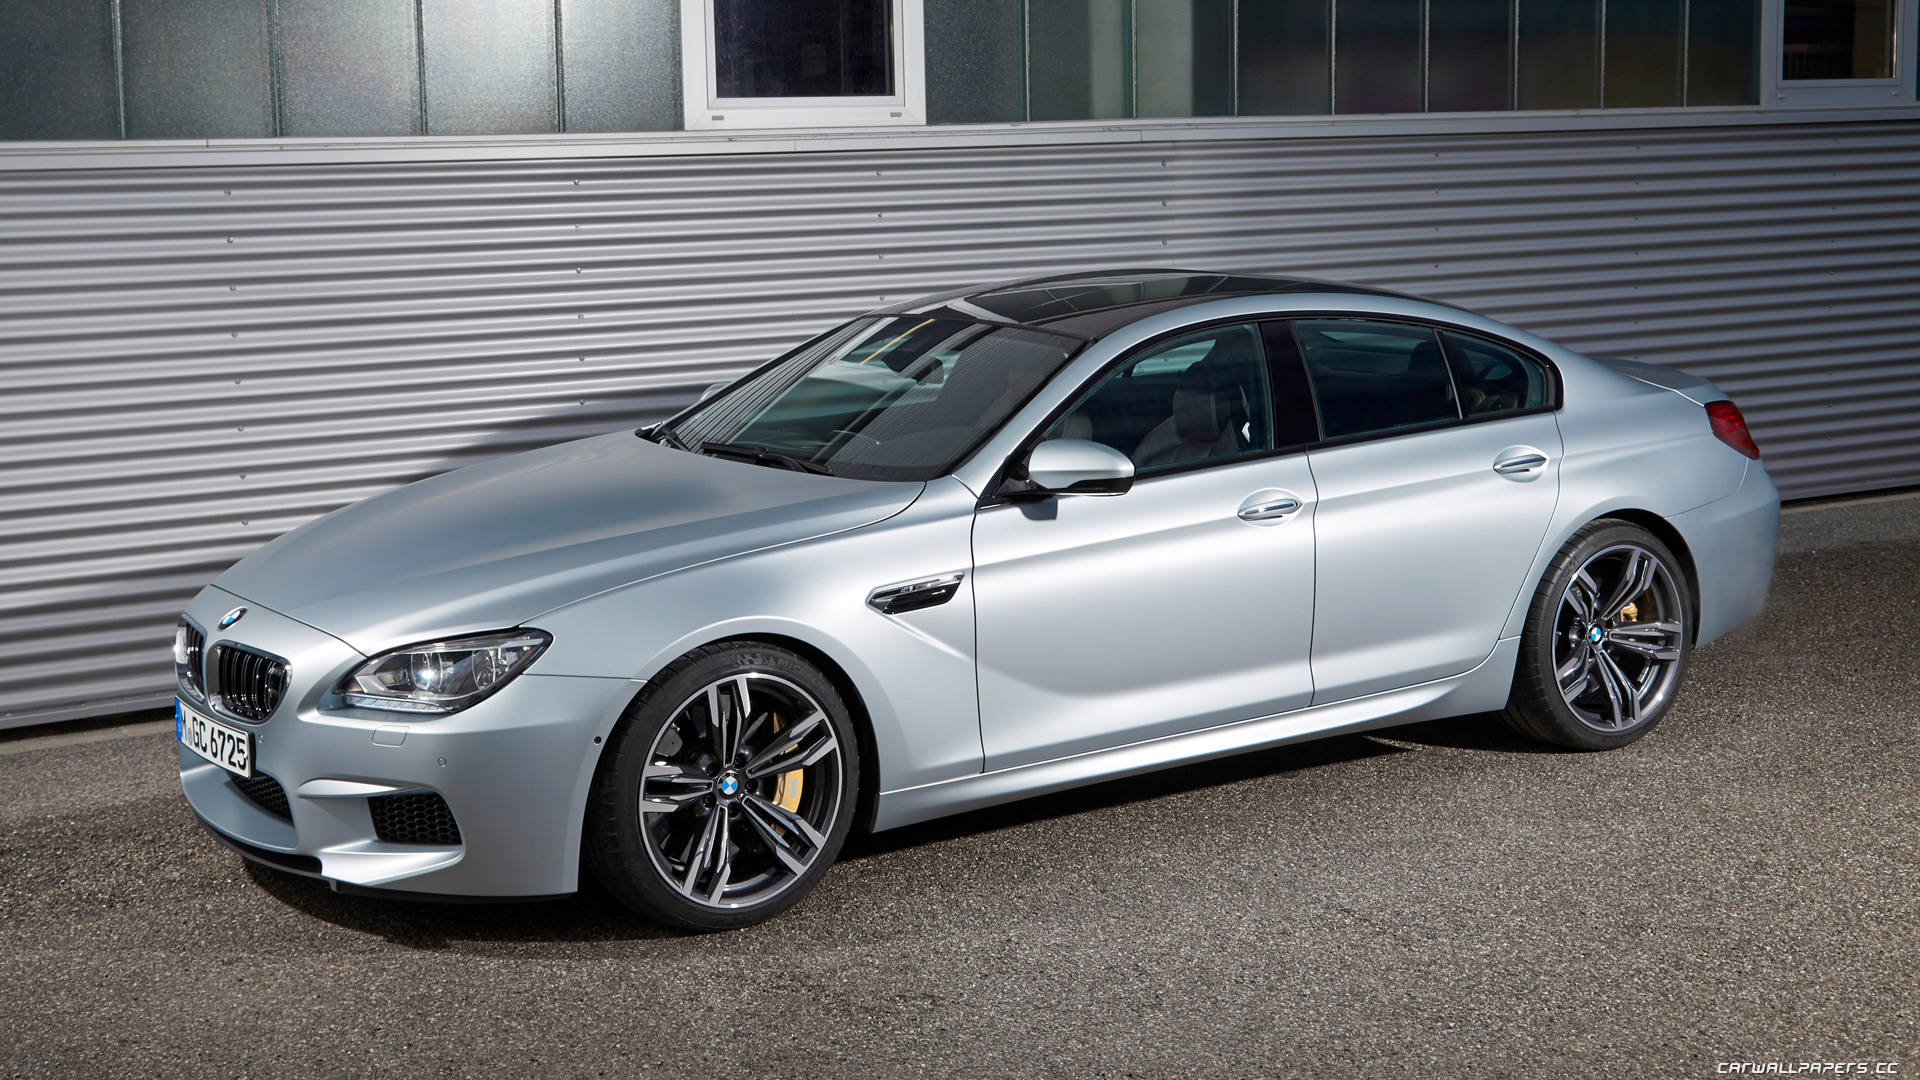 2016 Bmw M6 Gran Coupe #11